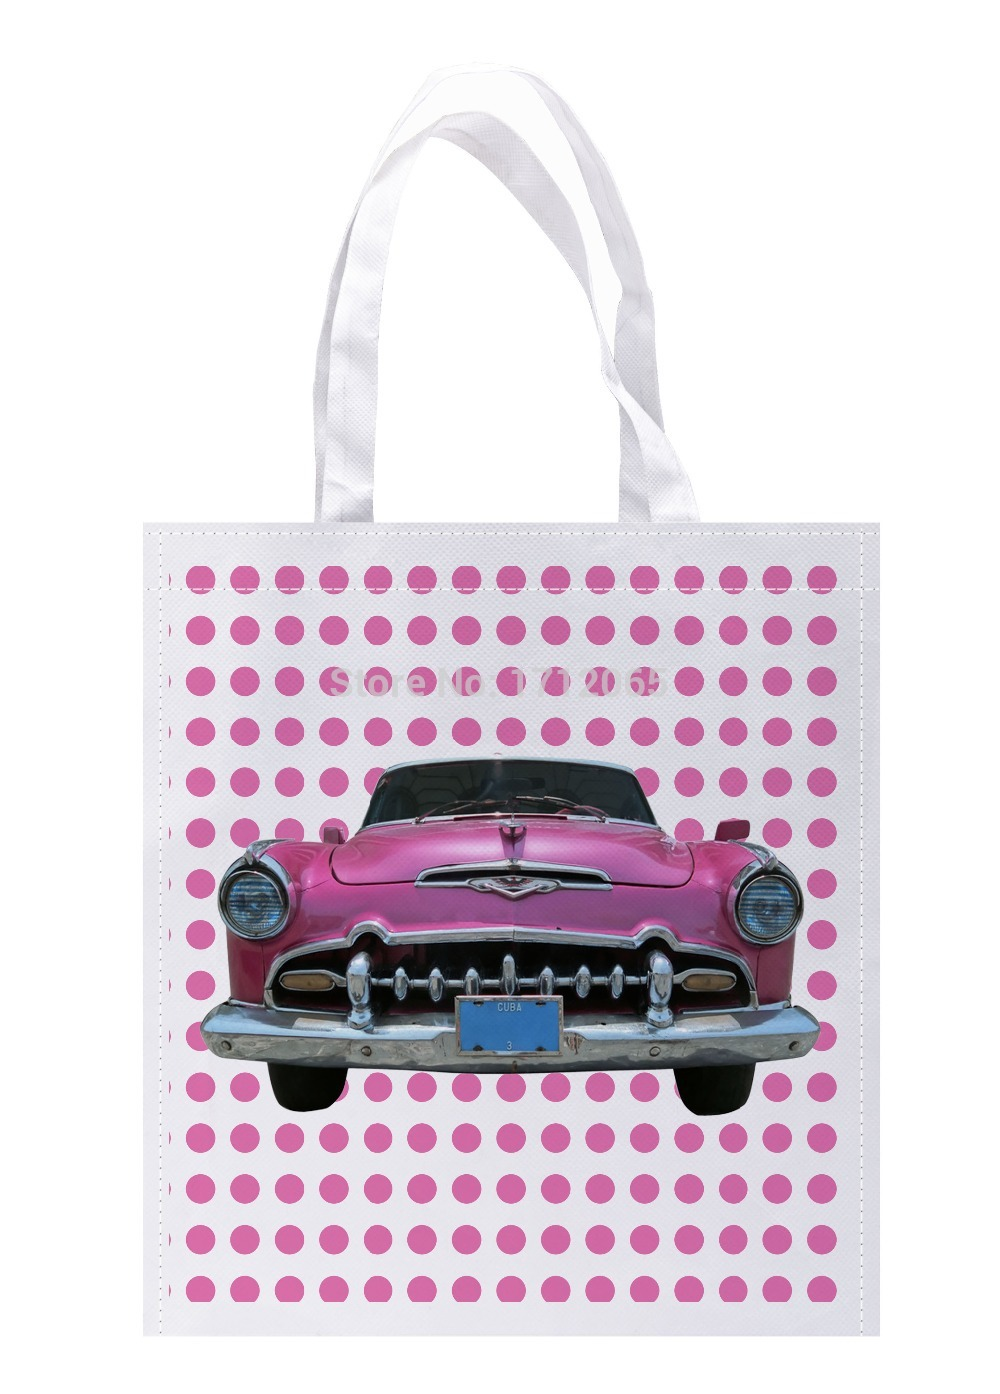 Pink Dot and Vintage old Car Print Custom individual lightweight polyester fabric Reusable grocery bag gift bag pack of 4(China (Mainland))